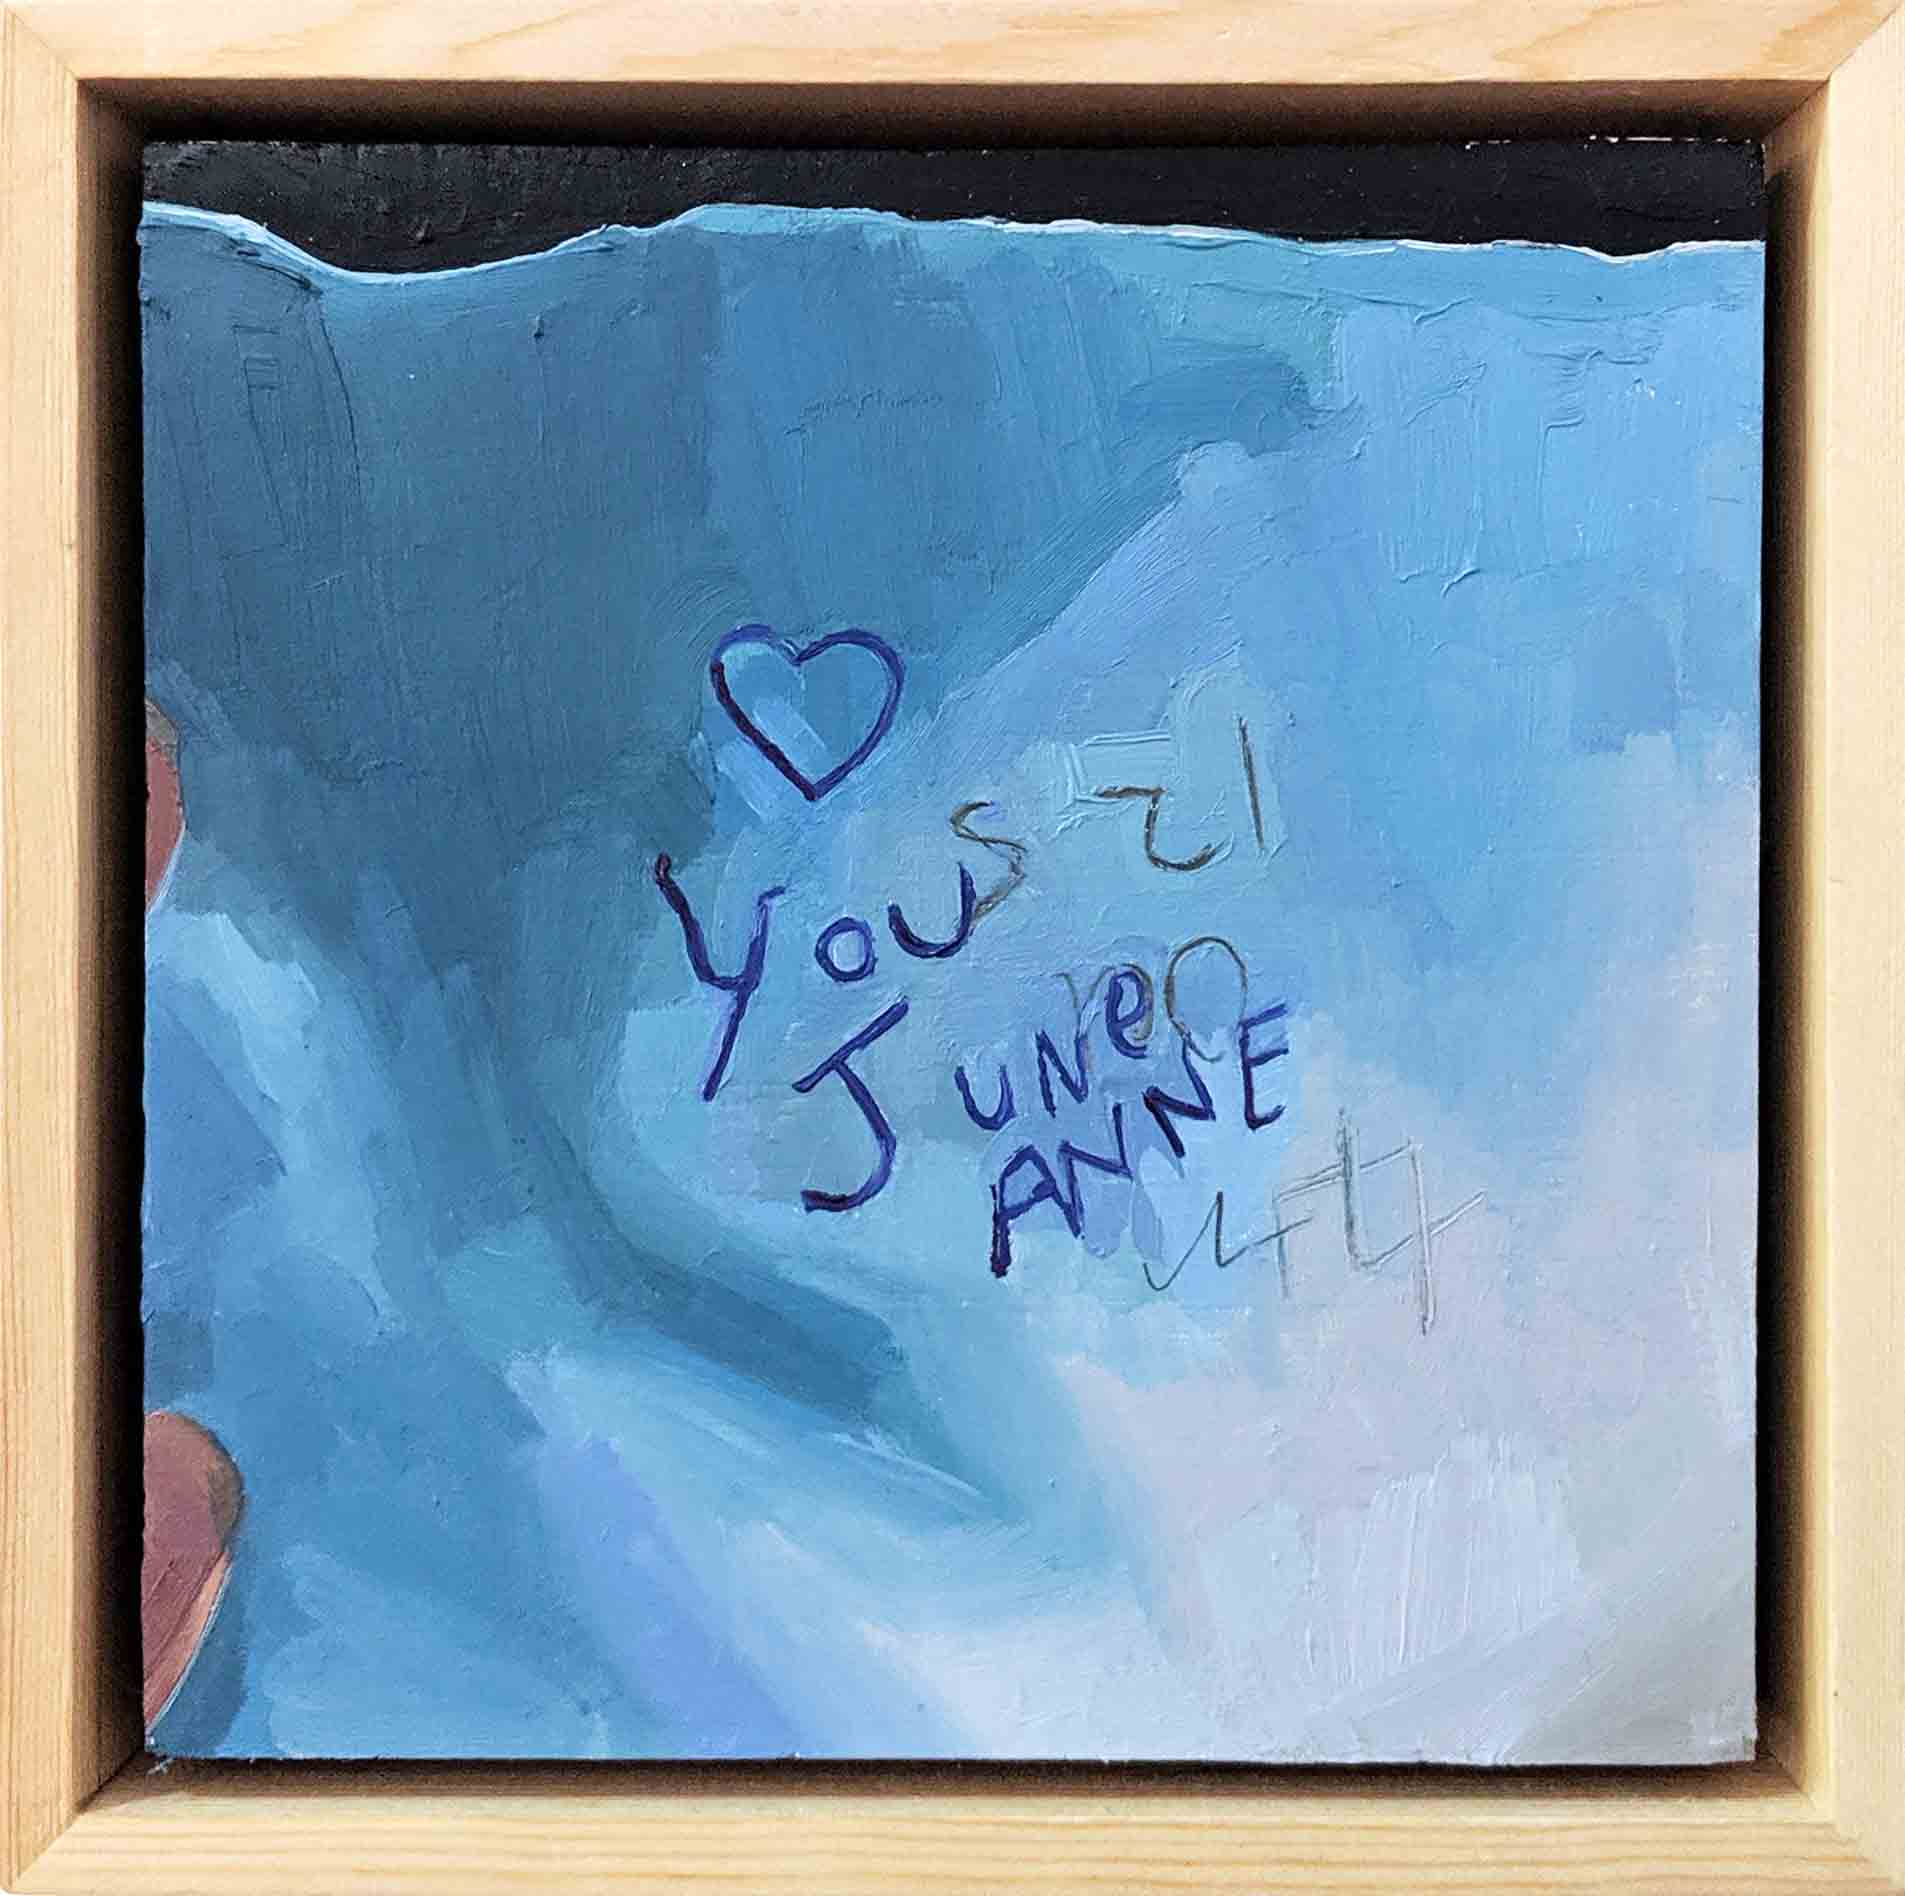 """1. Ellen Norrish,  @randomandfabulous """"I don't know who you are, I don't know what you want."""" But I will find you and cuddle the hell outta you x I got this note left on my windscreen, now the hunt begins! #windscreennote #iwillfindyou #loveit,  2019, oil on board, 15 x 15 cm $260"""